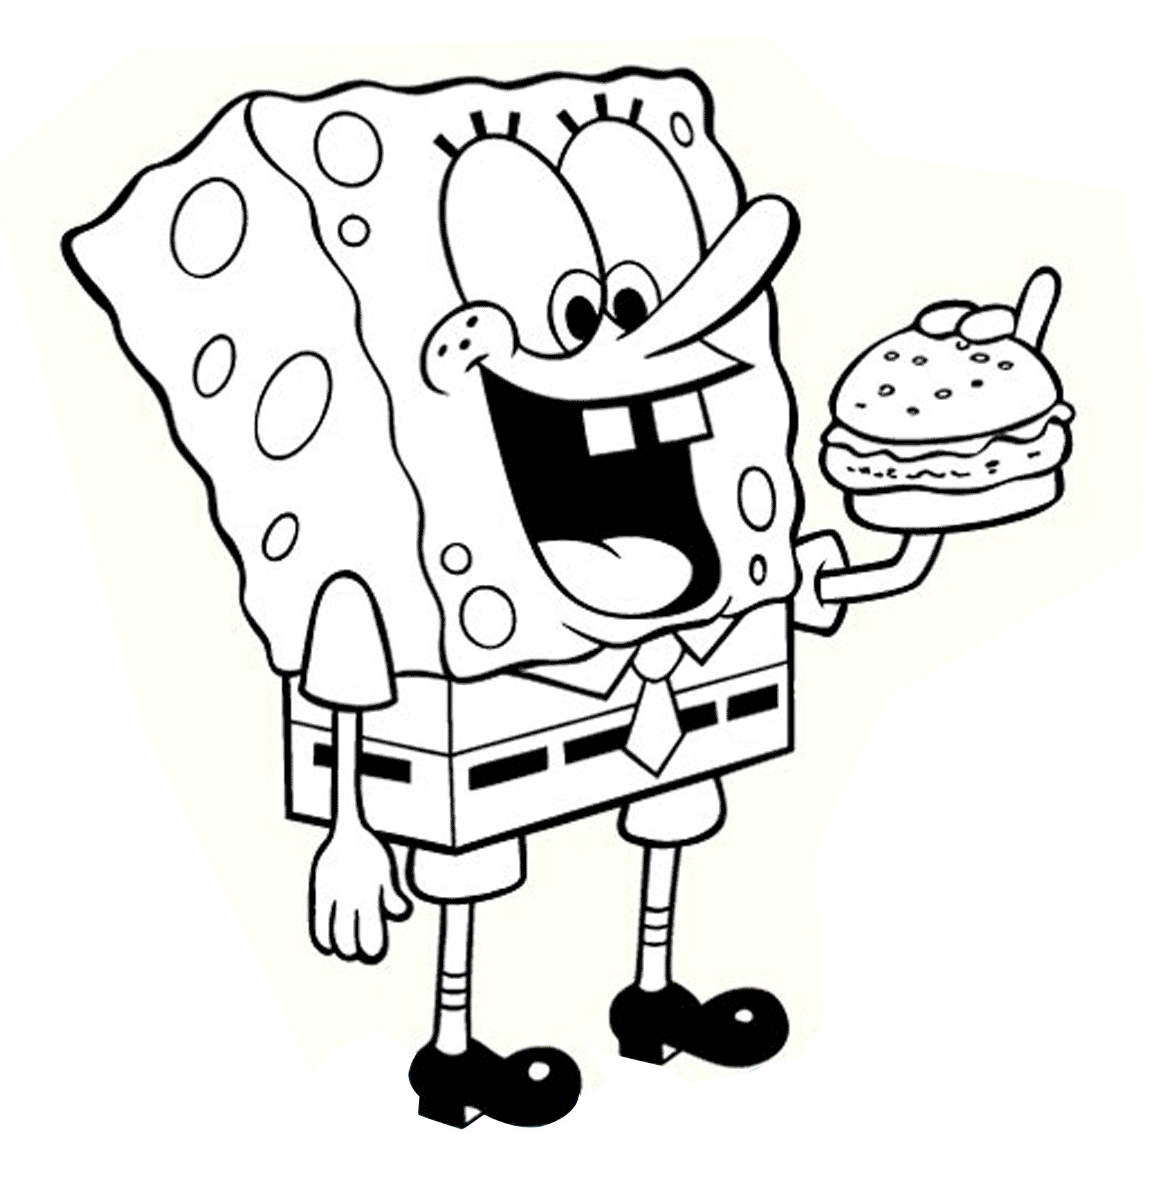 Printable coloring pages spongebob - Spongebob Coloring Pages To Print Spongebob Coloring Pages Free Printable Download